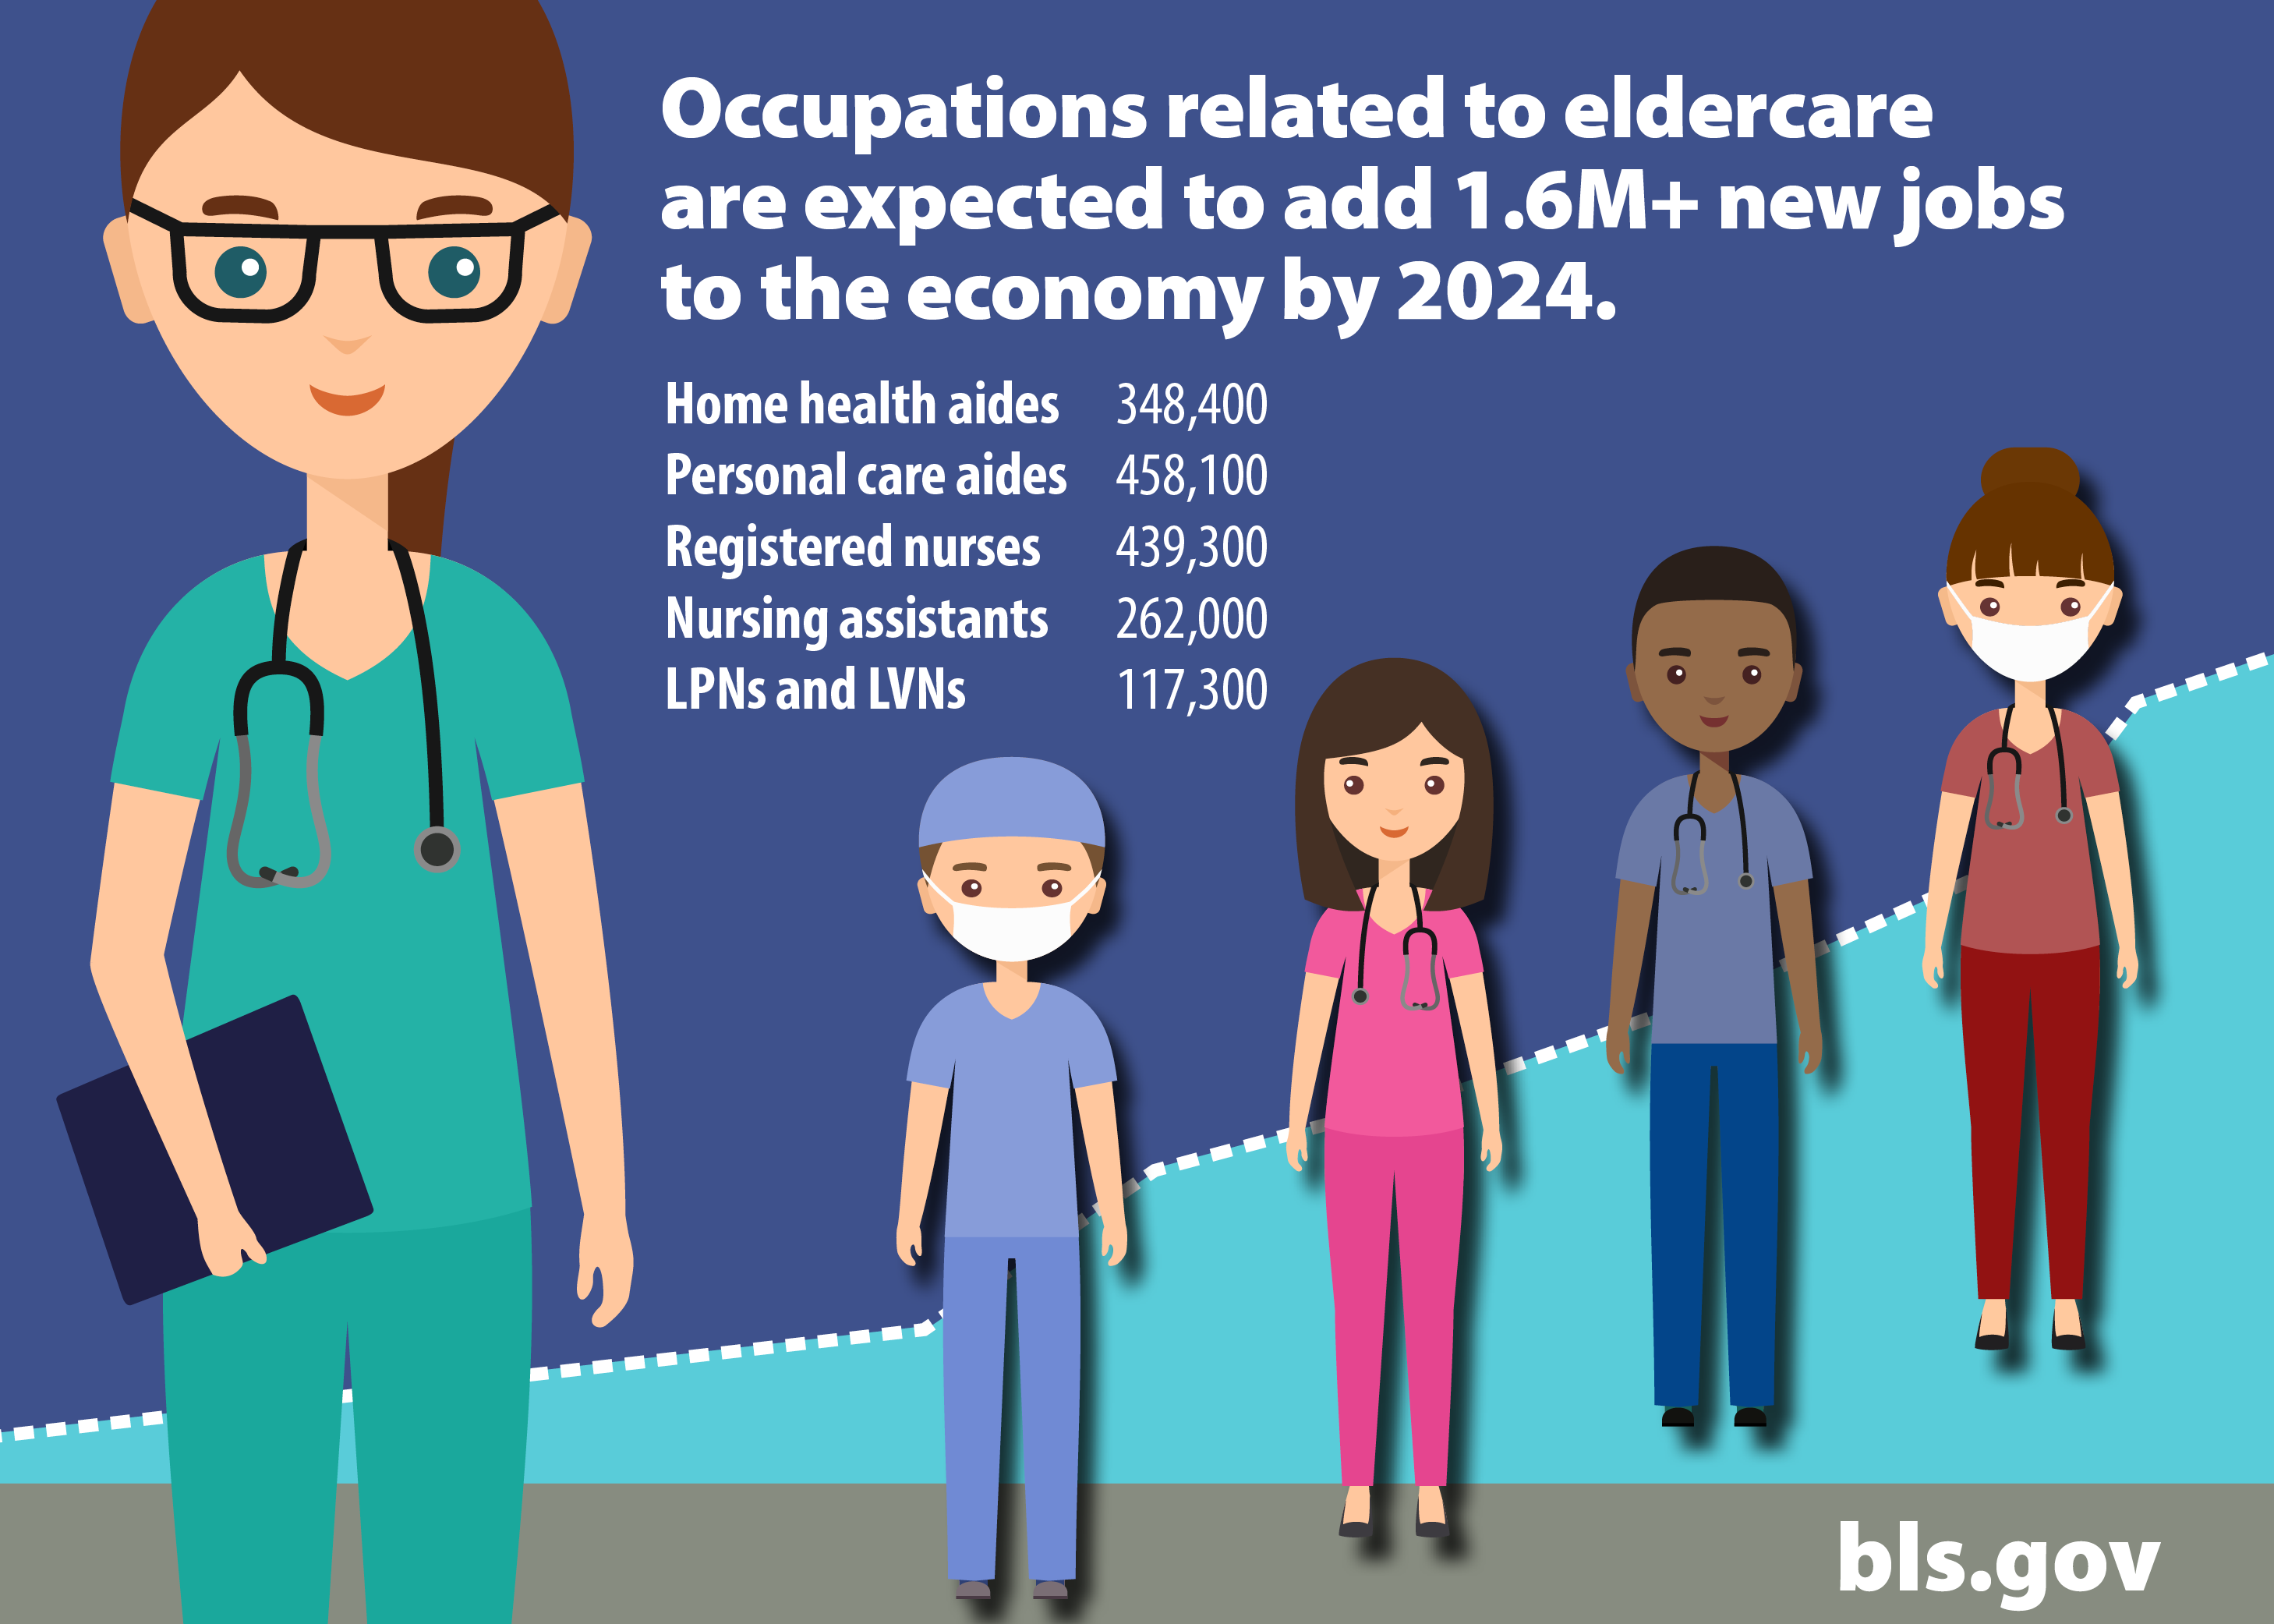 Occupations related to eldercare will